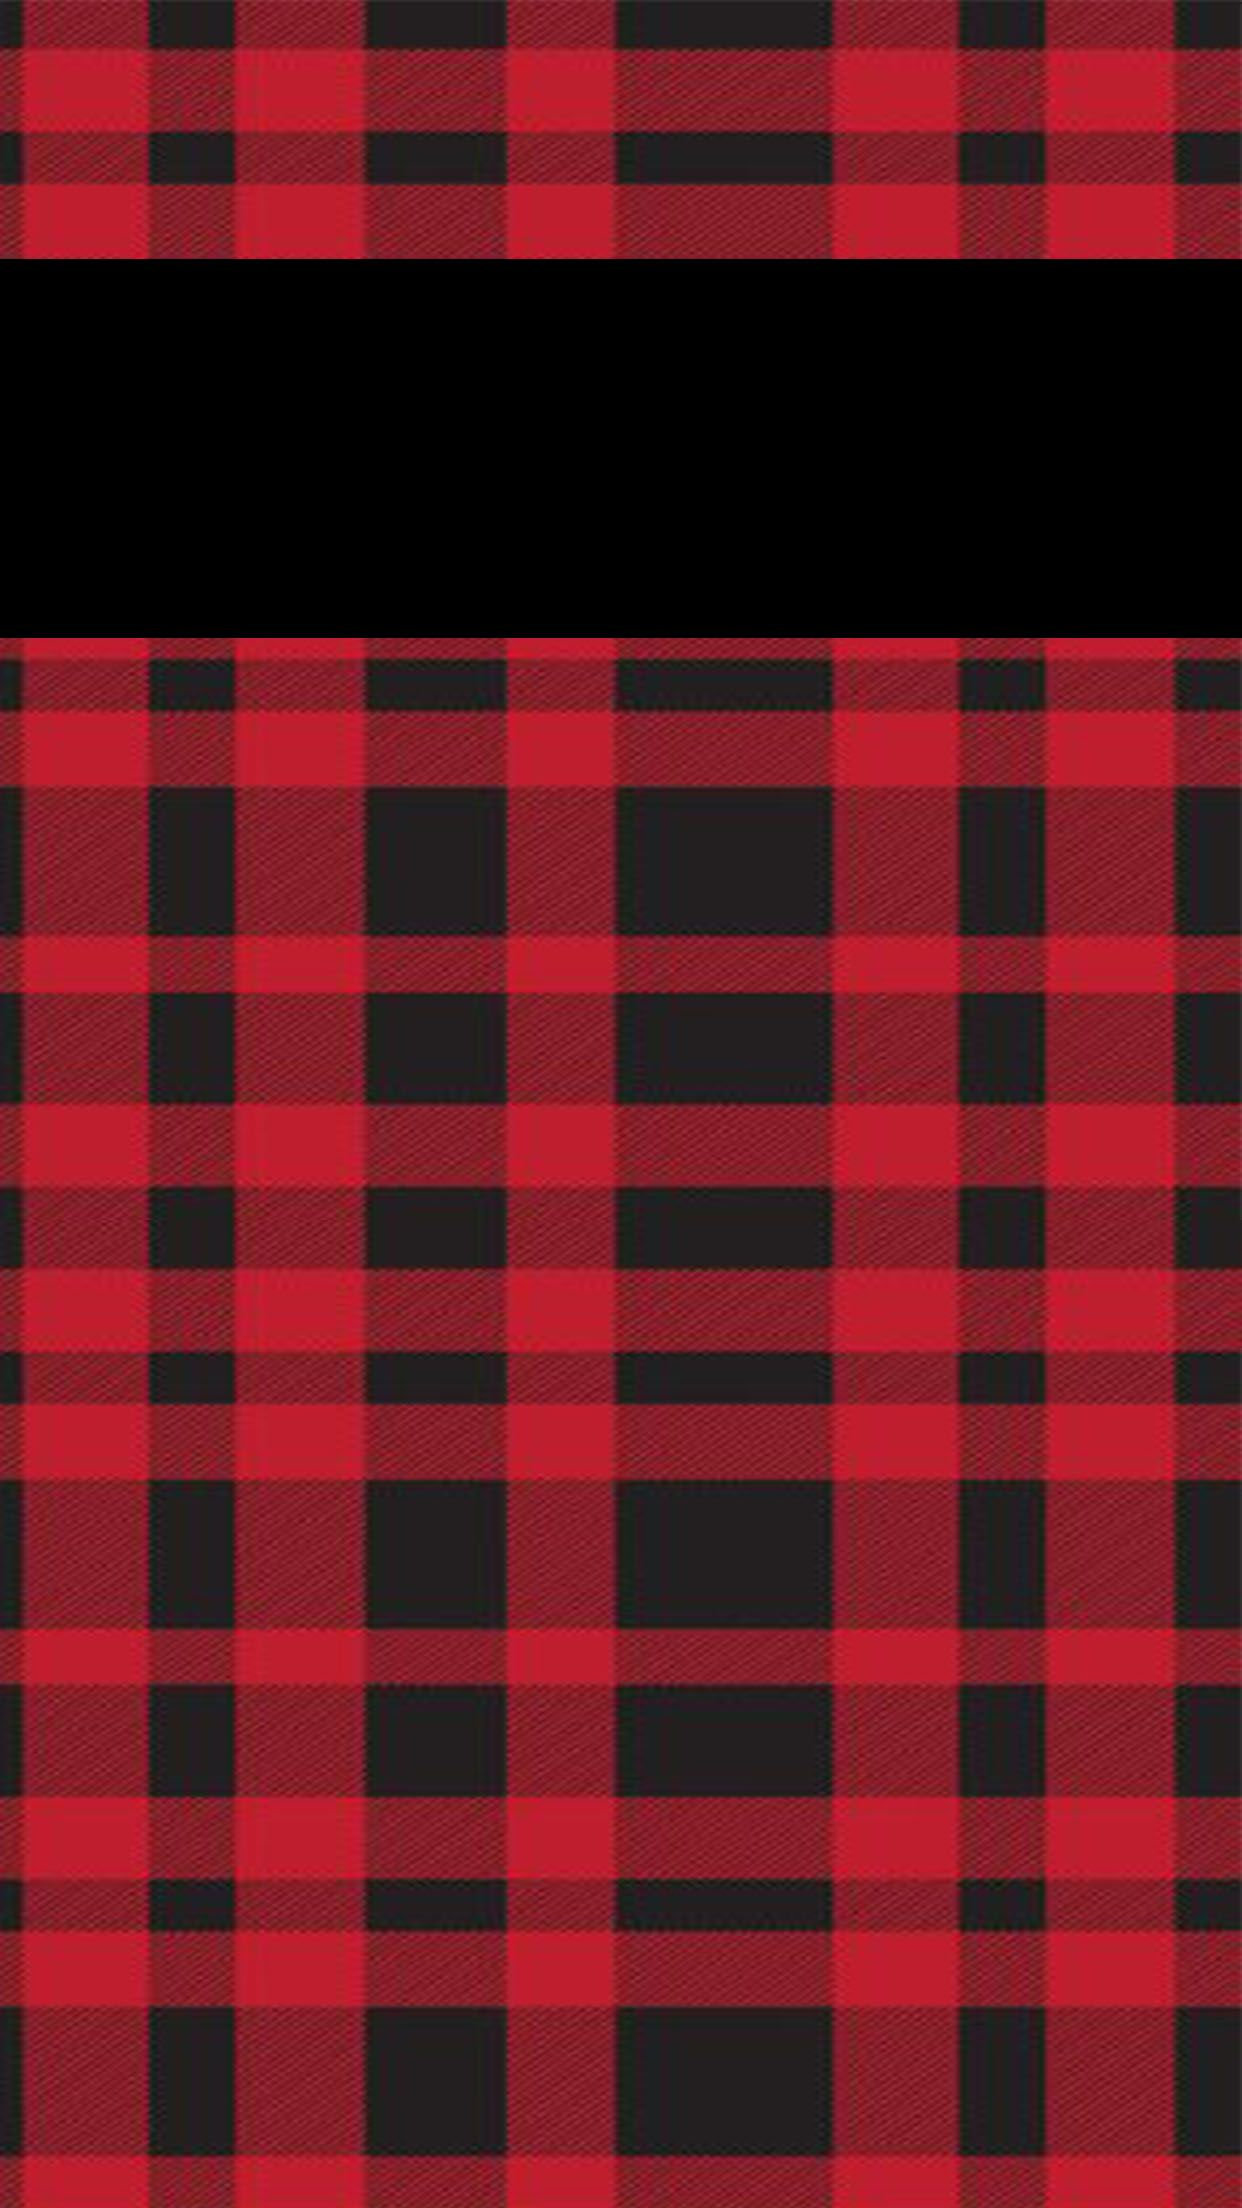 Buffalo Plaid Lock Screen Plaid Wallpaper Cellphone Wallpaper